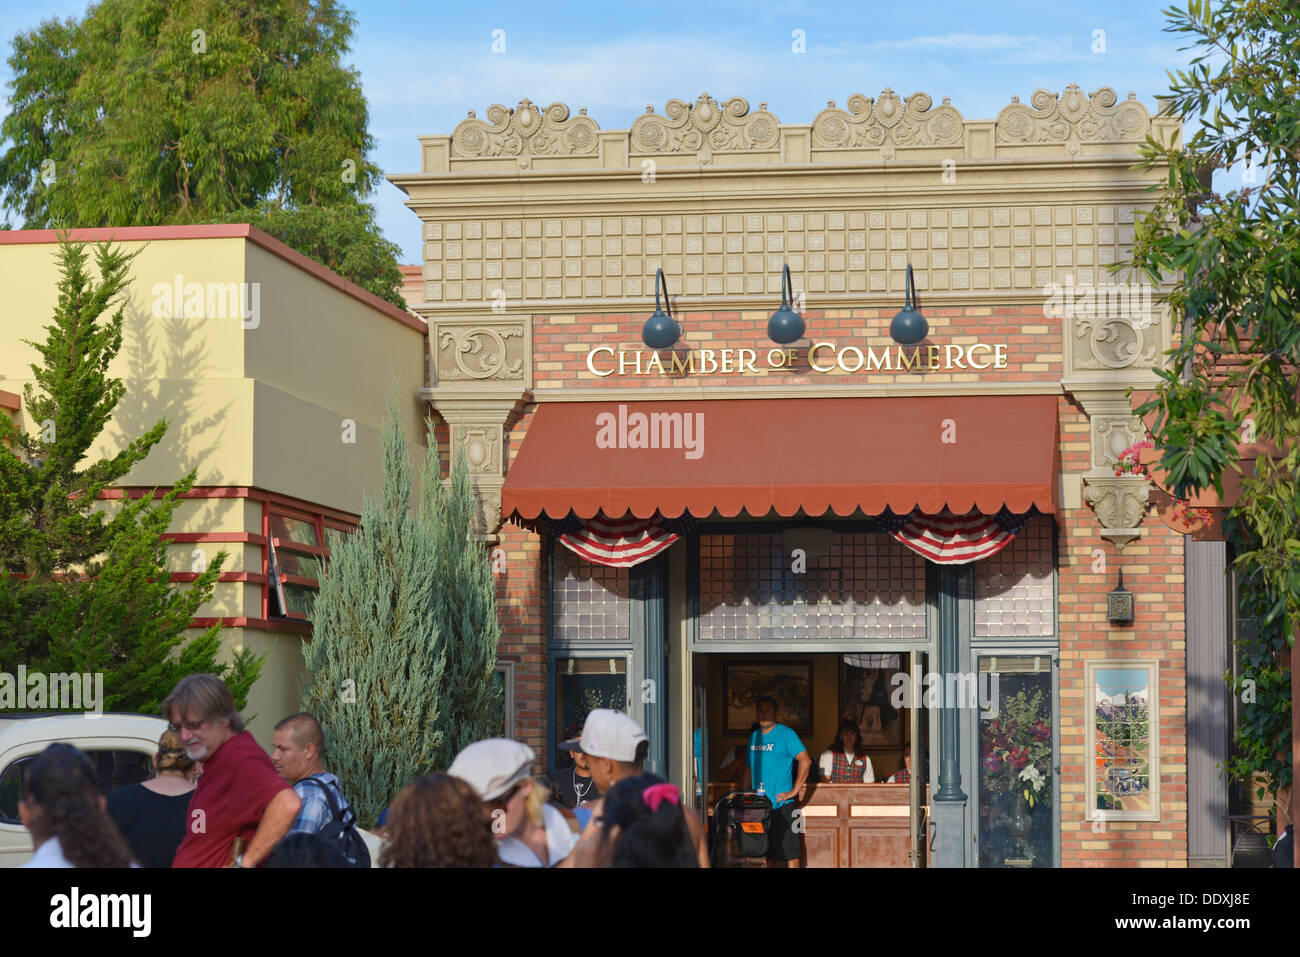 Chamber of Commerce, on Buena Vista Street, Disneyland Resort, California Adventure Park, Anaheim, California - Stock Image